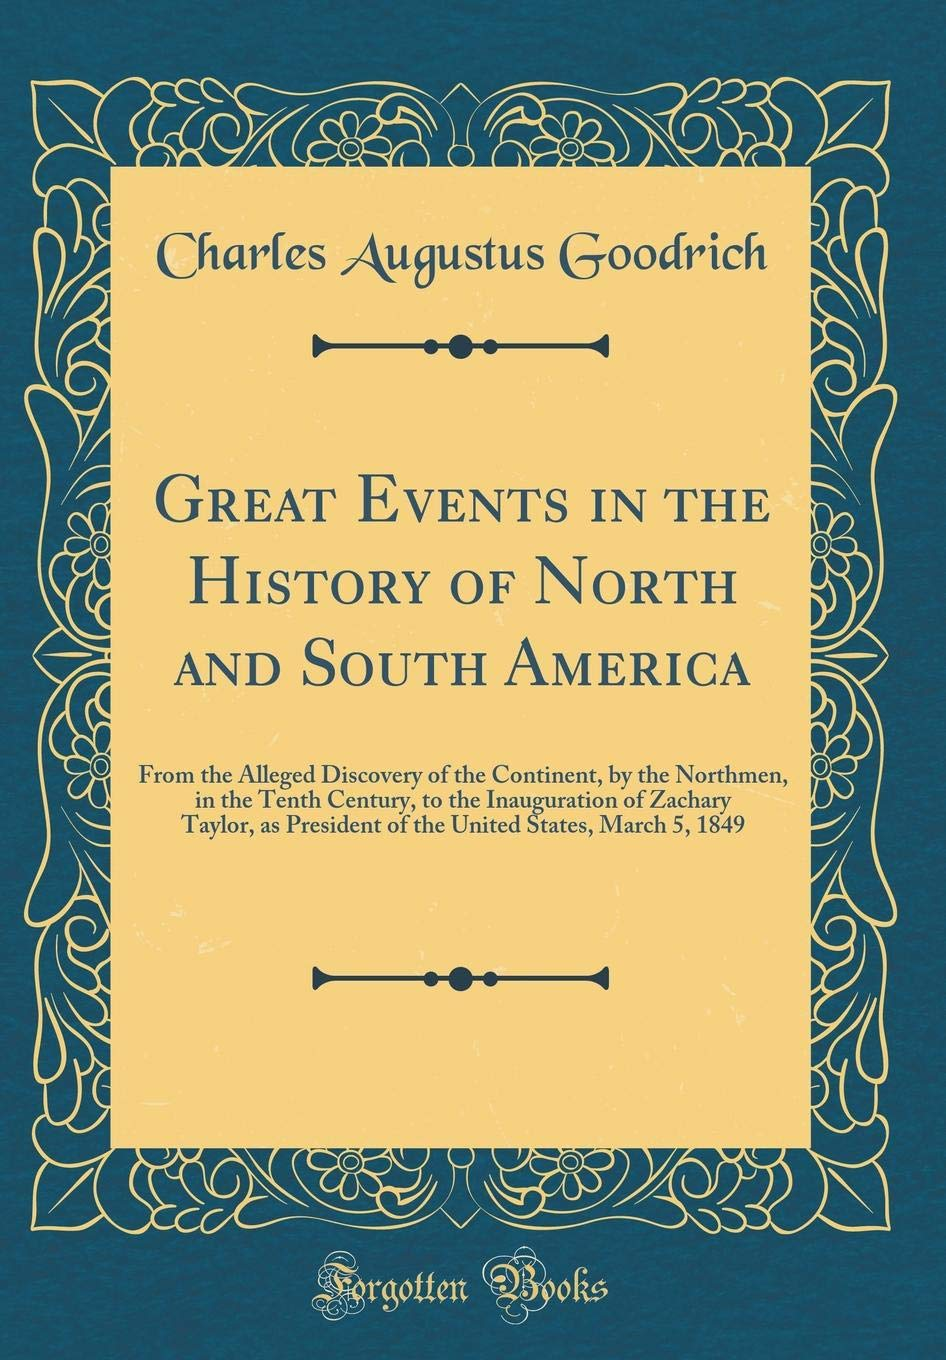 Great Events in the History of North and South America: From the Alleged Discovery of the Continent, by the Northmen, in the Tenth Century, to the ... States, March 5, 1849 (Classic Reprint) PDF